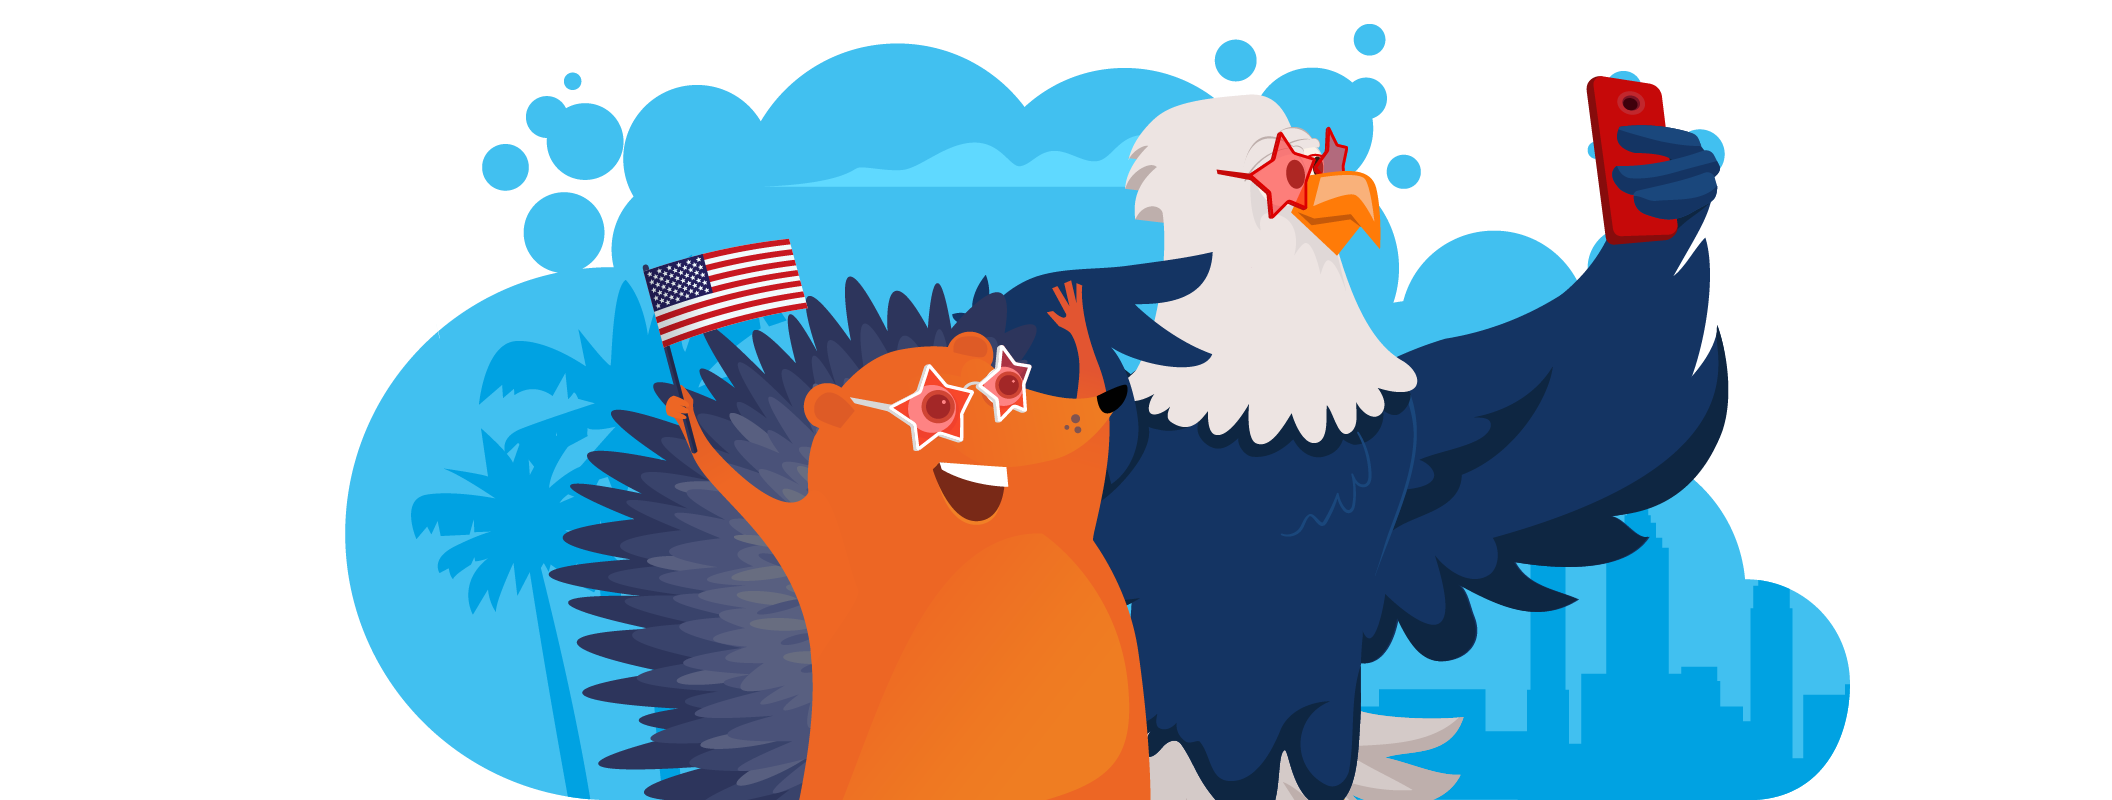 Namecheap Fourth of July Offer